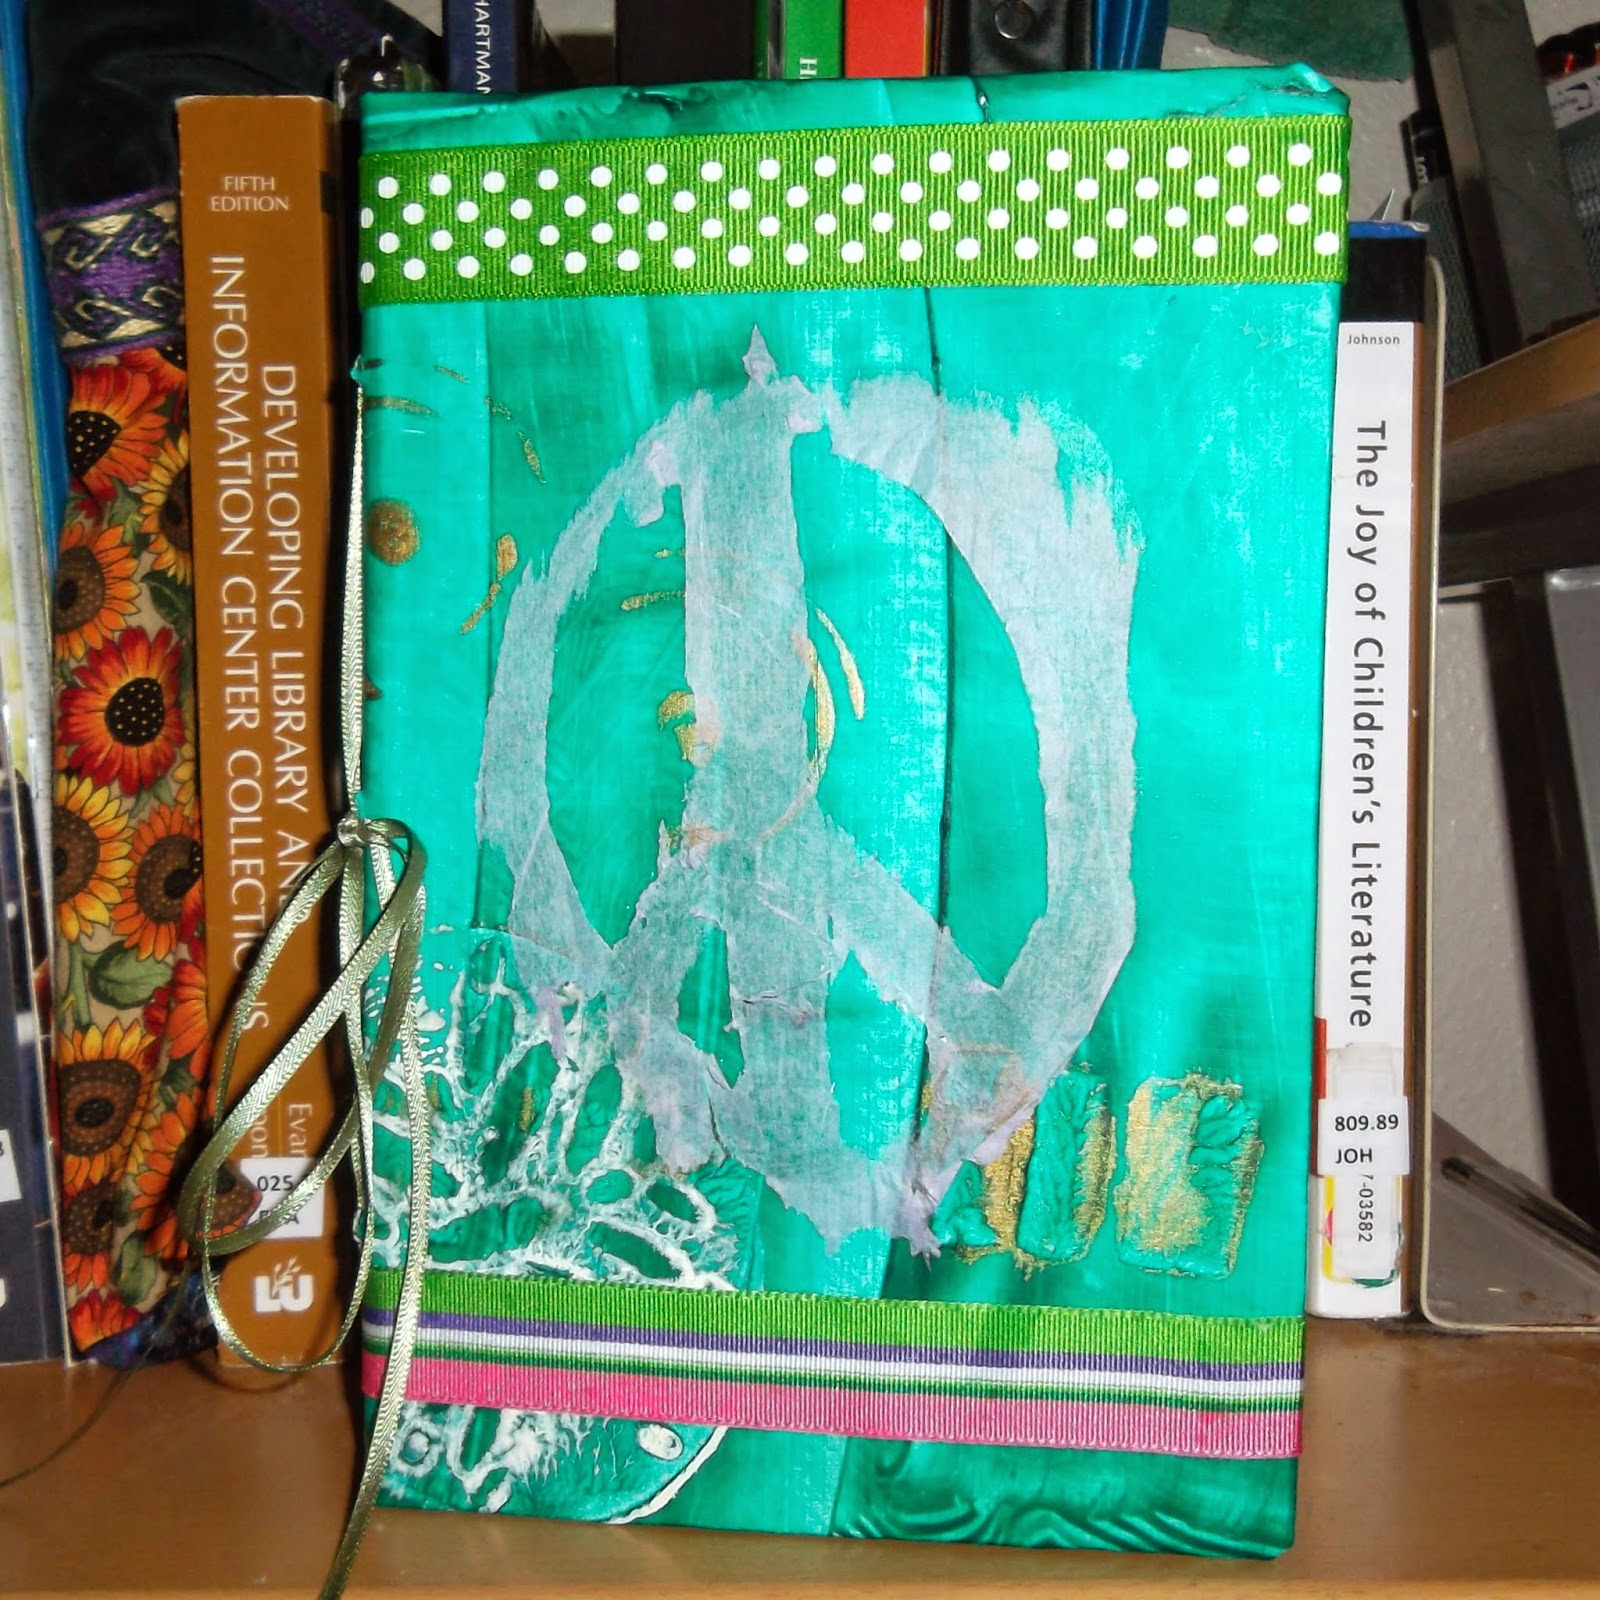 Handmade book, stood-up with front cover forward. Visible behind it are the spines of shelved books.